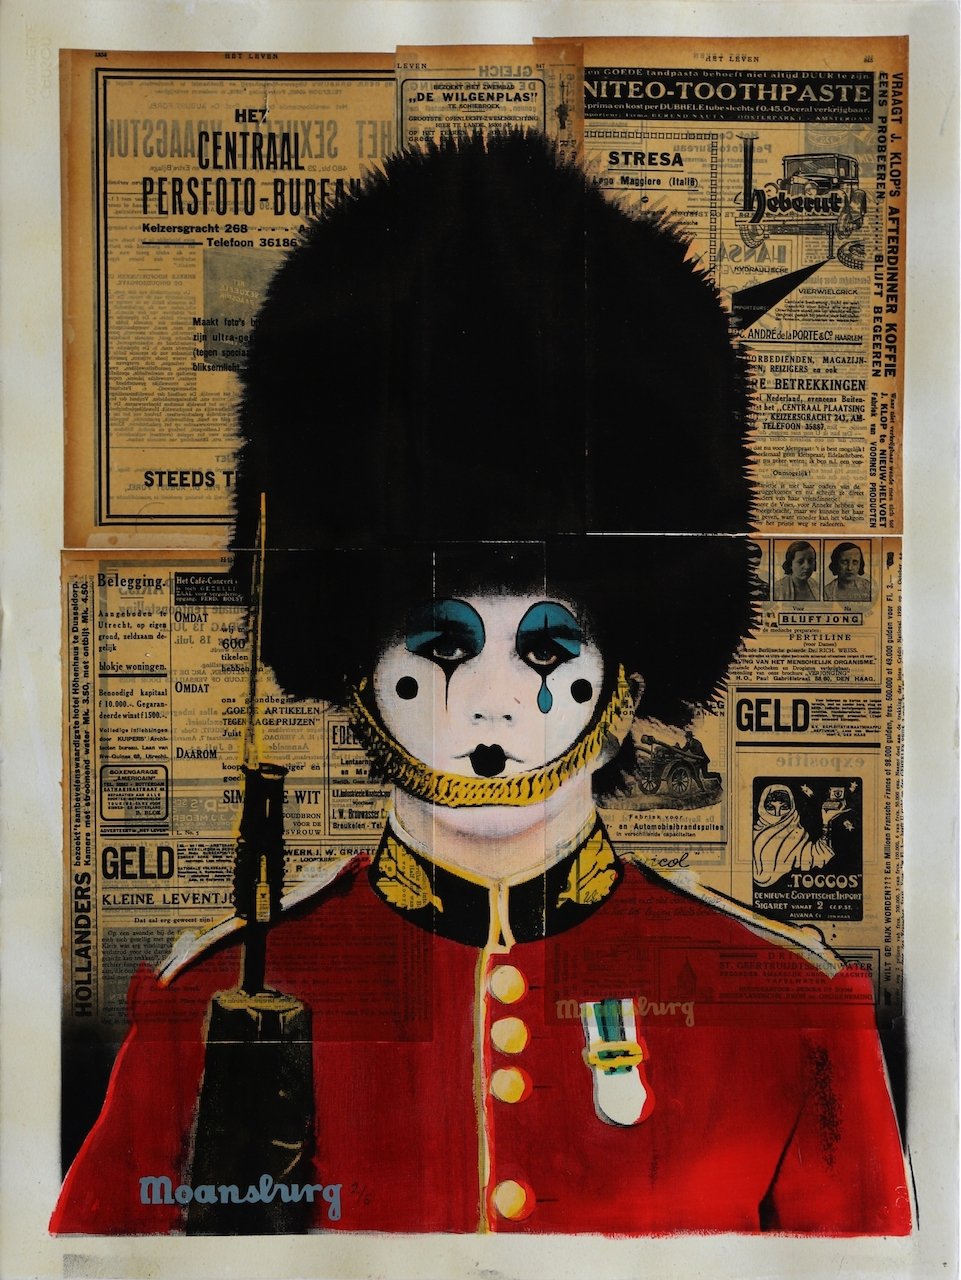 Crail Moansburg - Changing The Guard (Pierrot Face).jpg